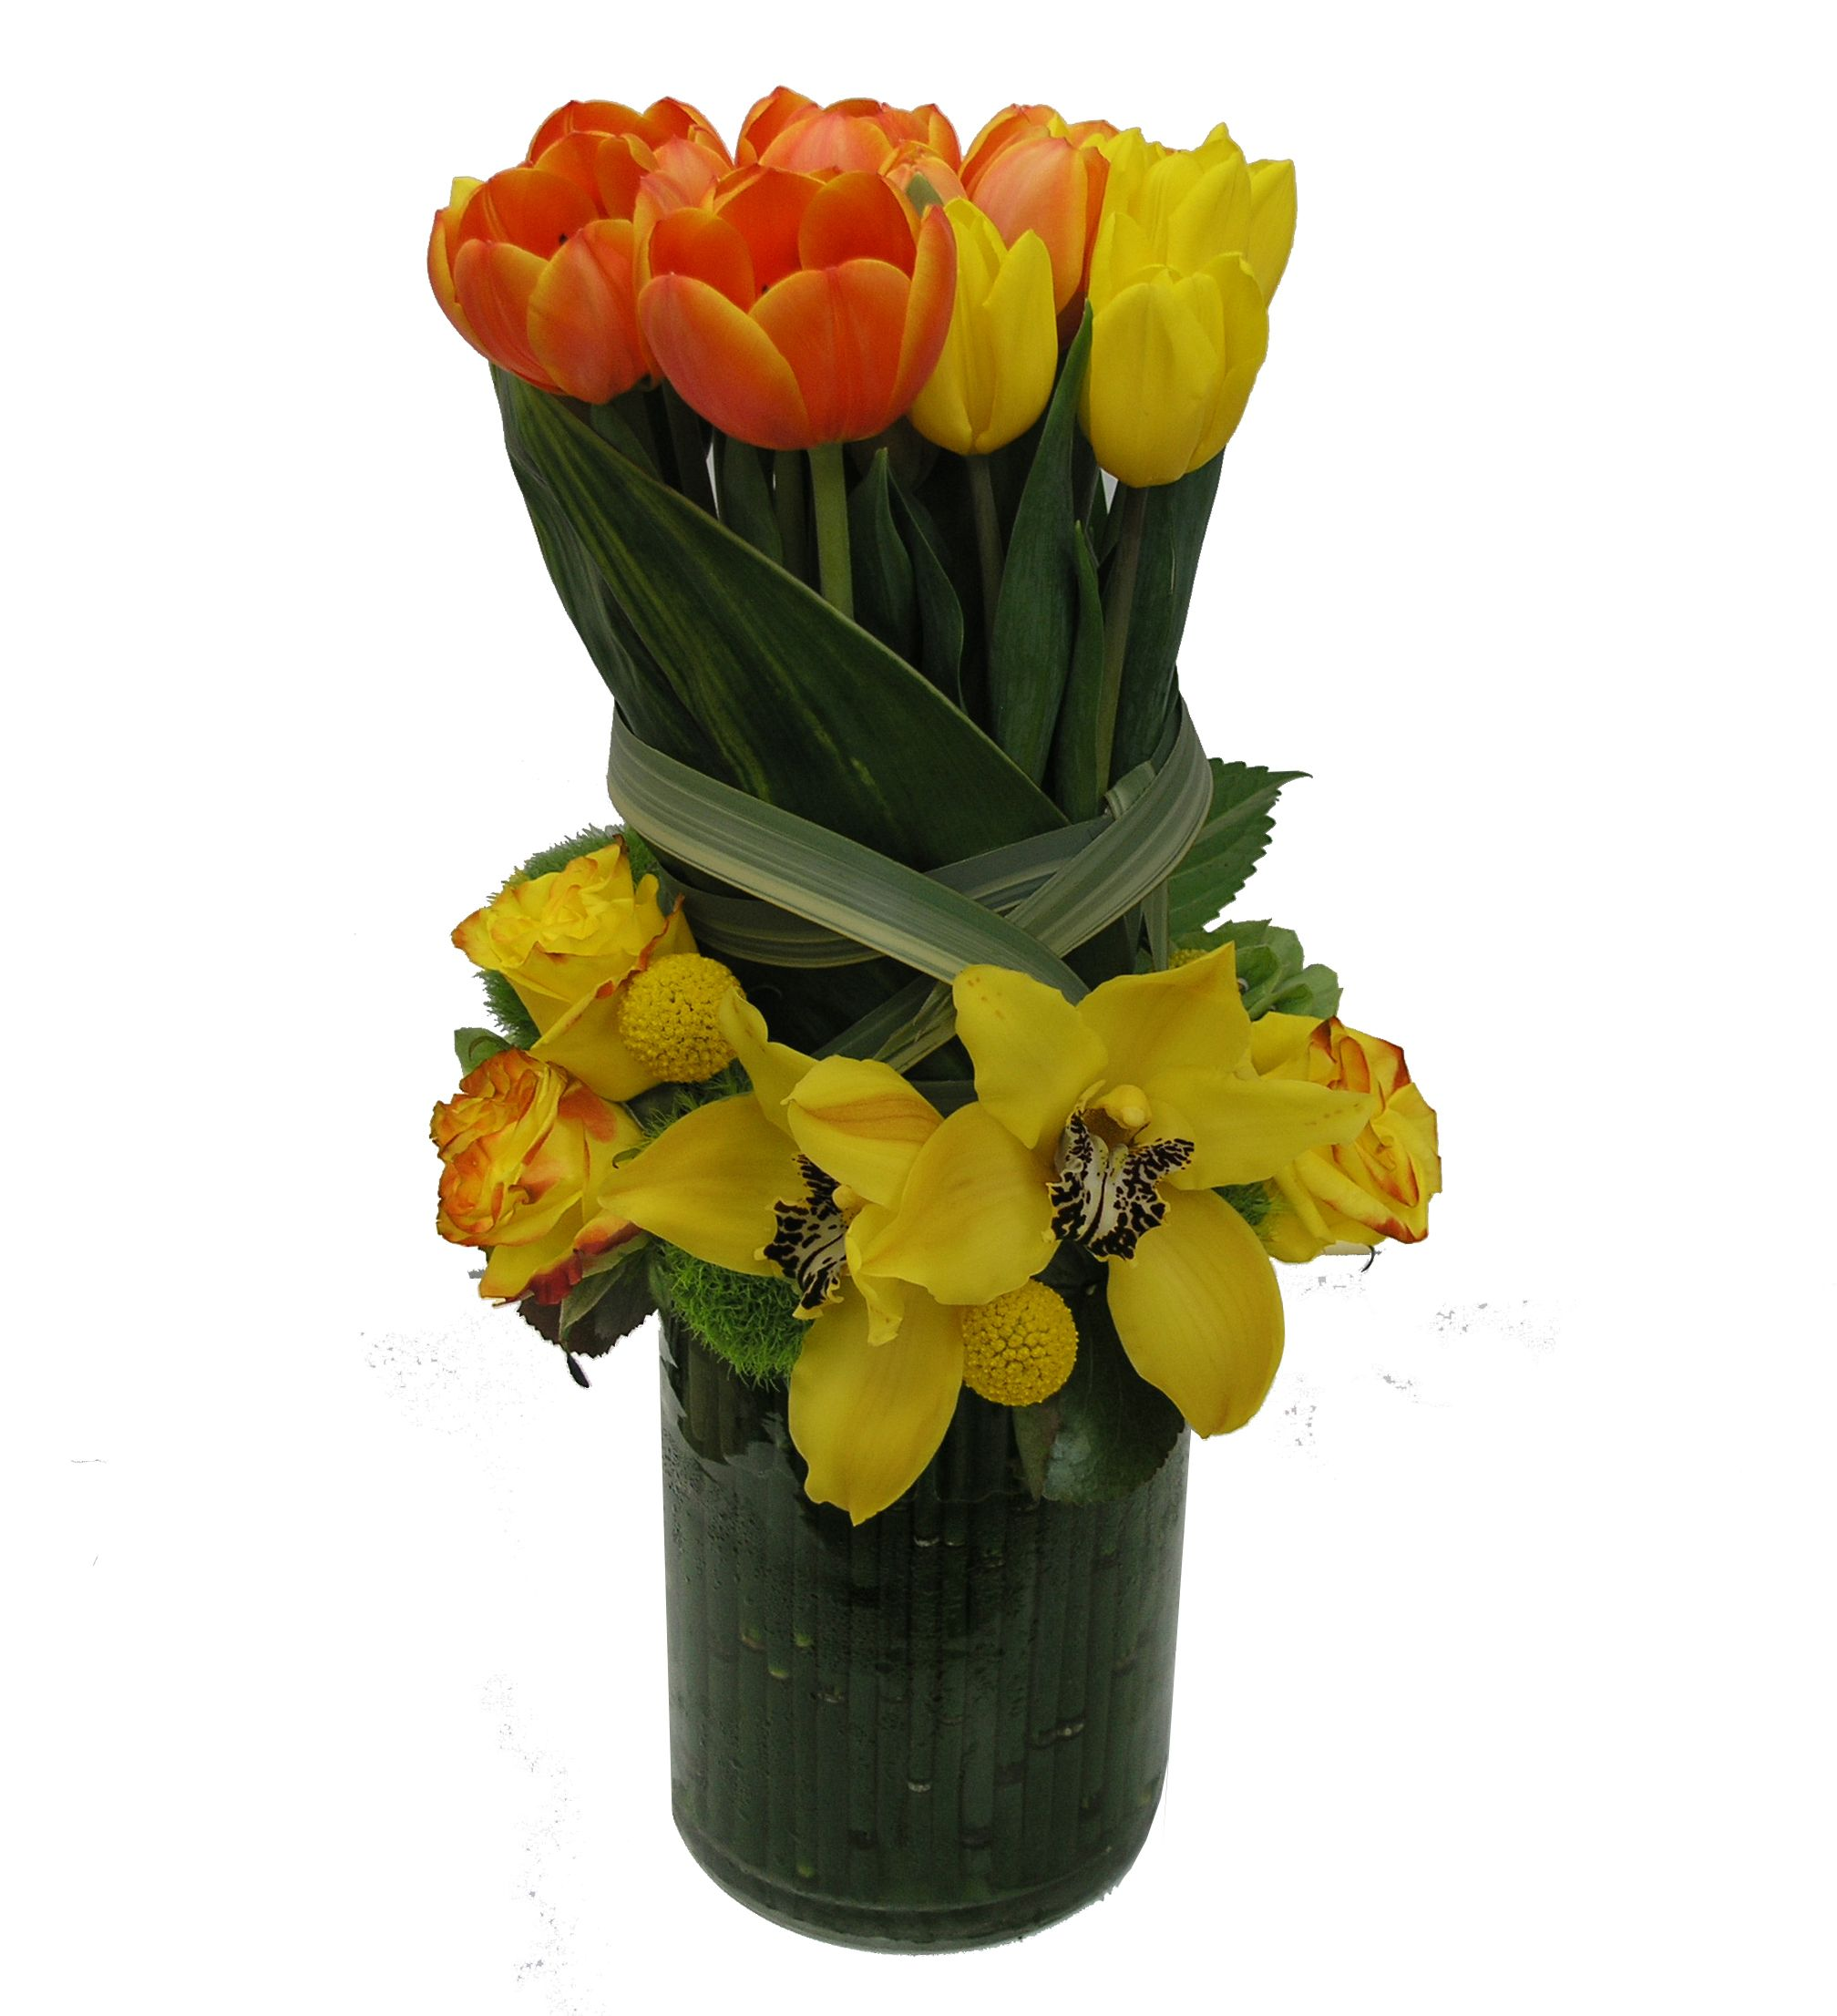 and green tulips of pin white decor plant arranged ireland bells in home oval apple vase arrangement tulip office